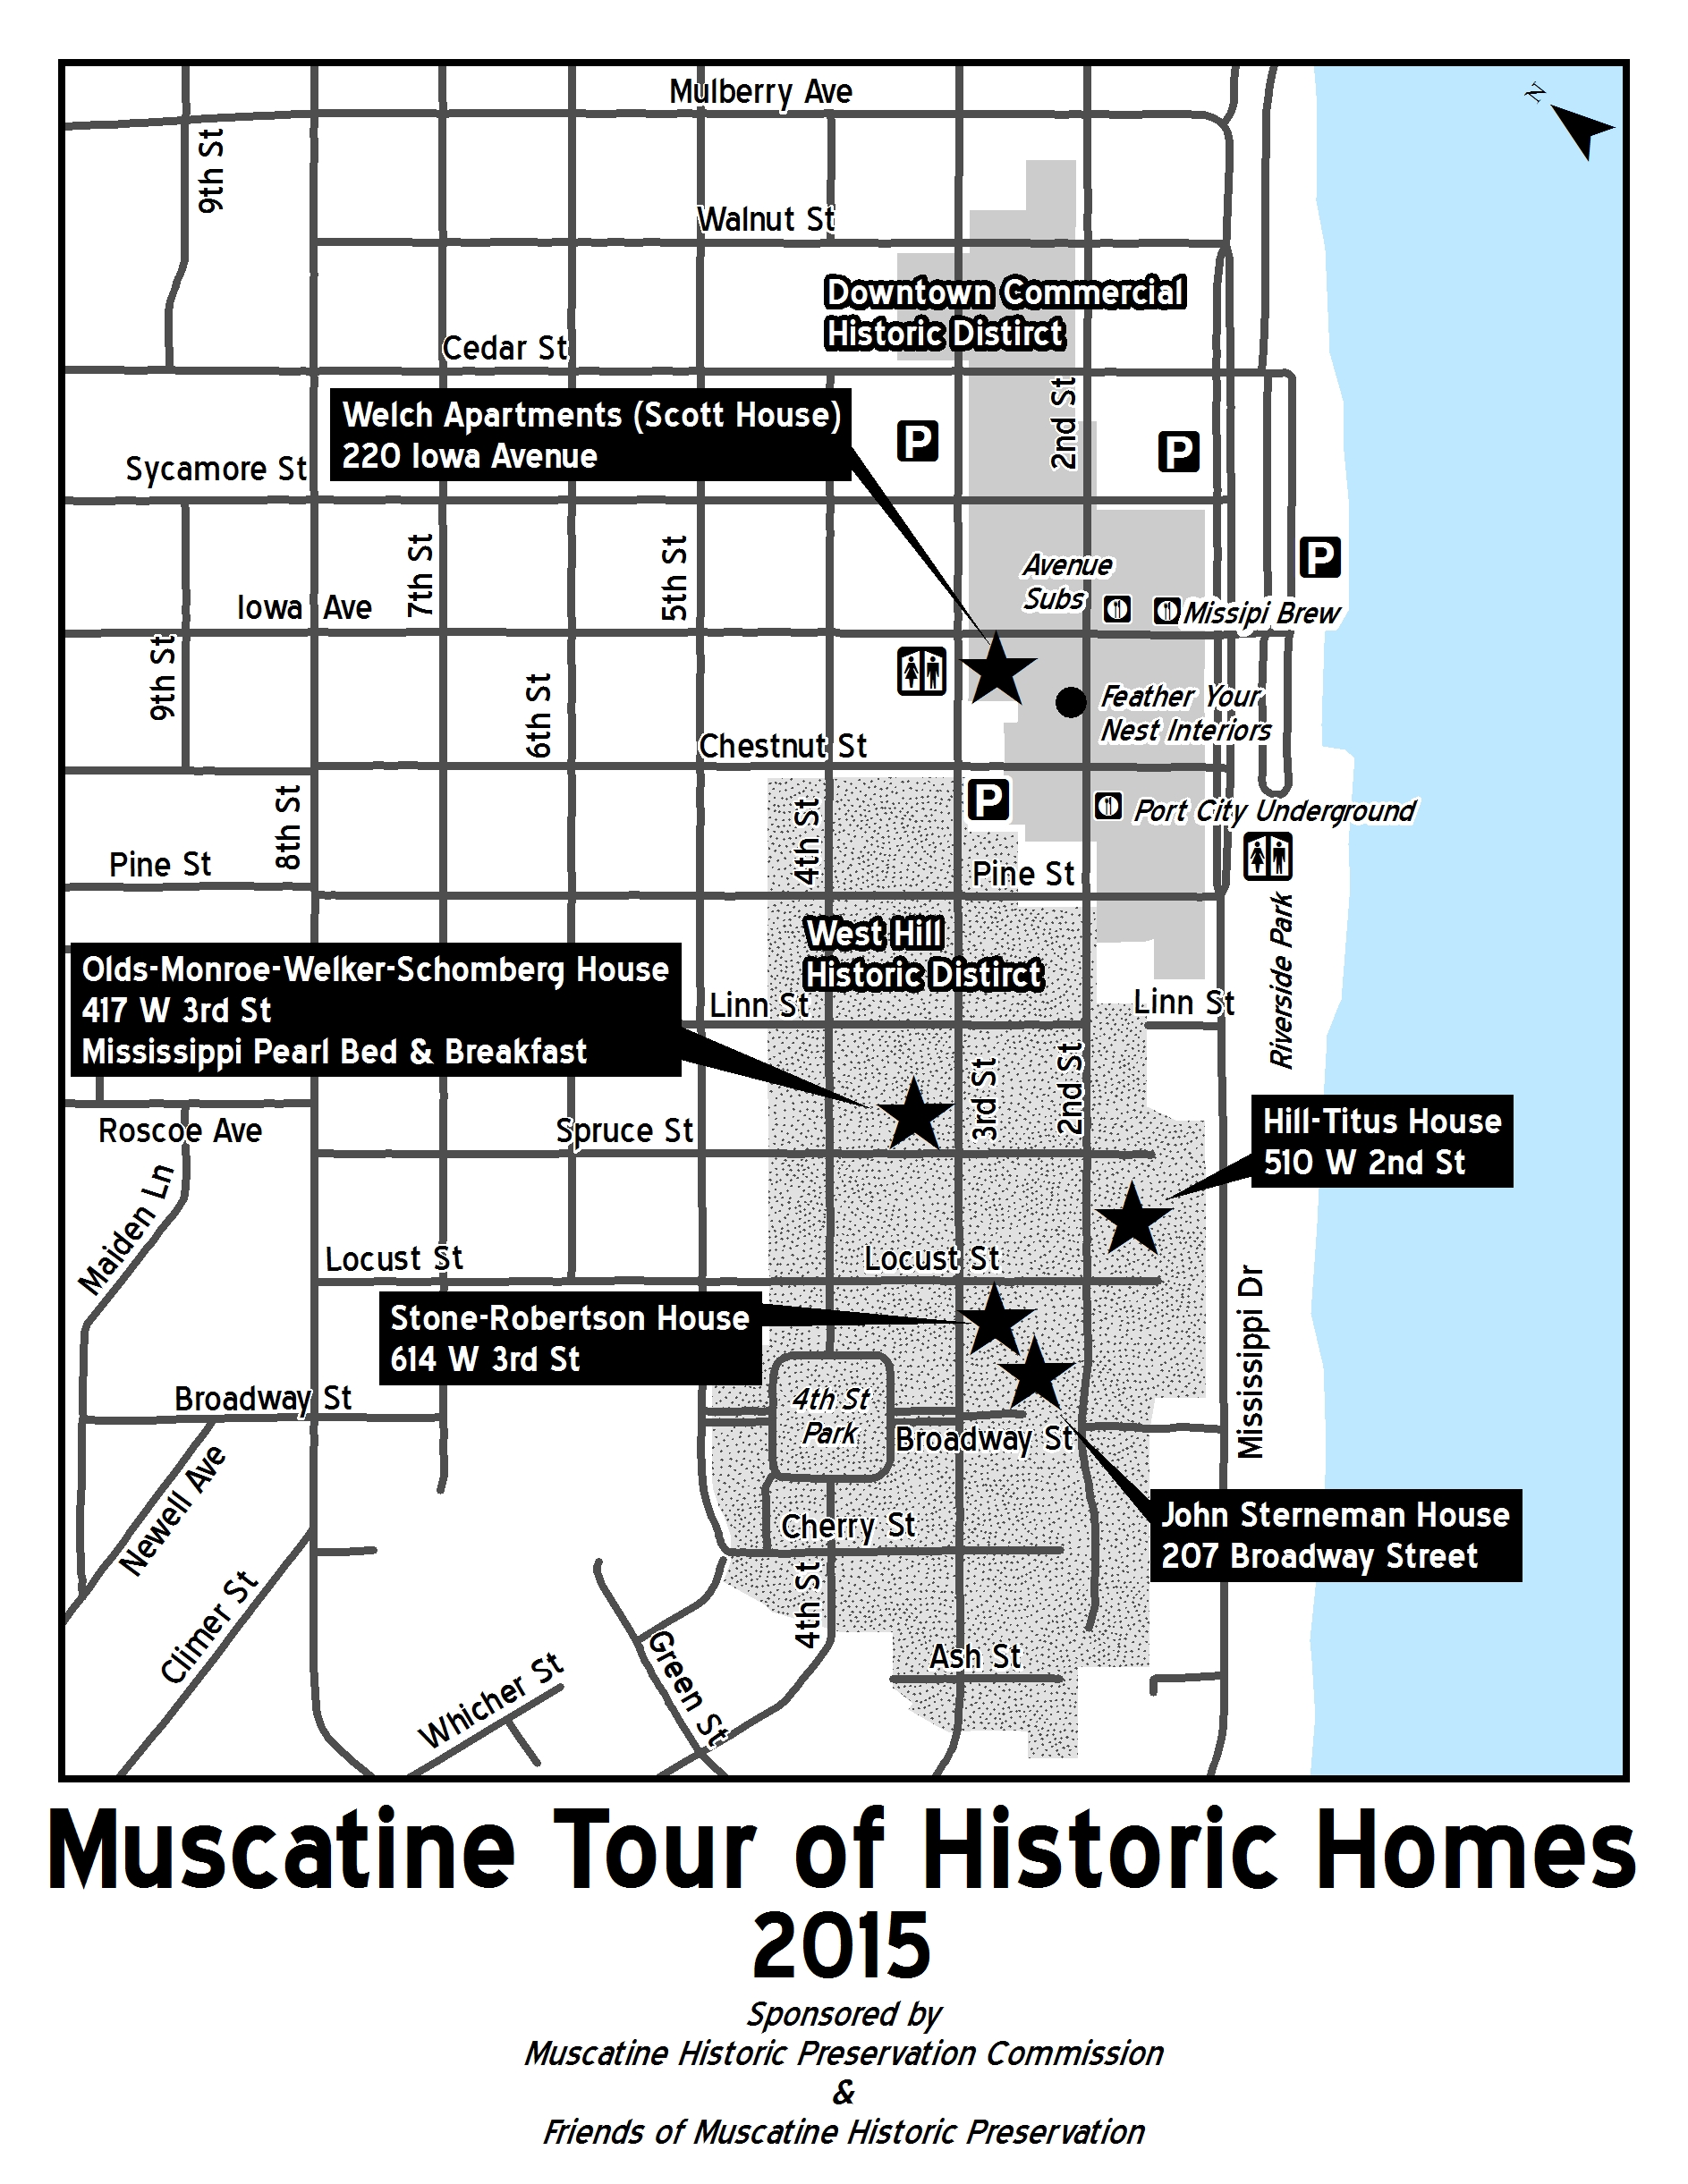 Muscatine Tour of Historic Homes Black and white map